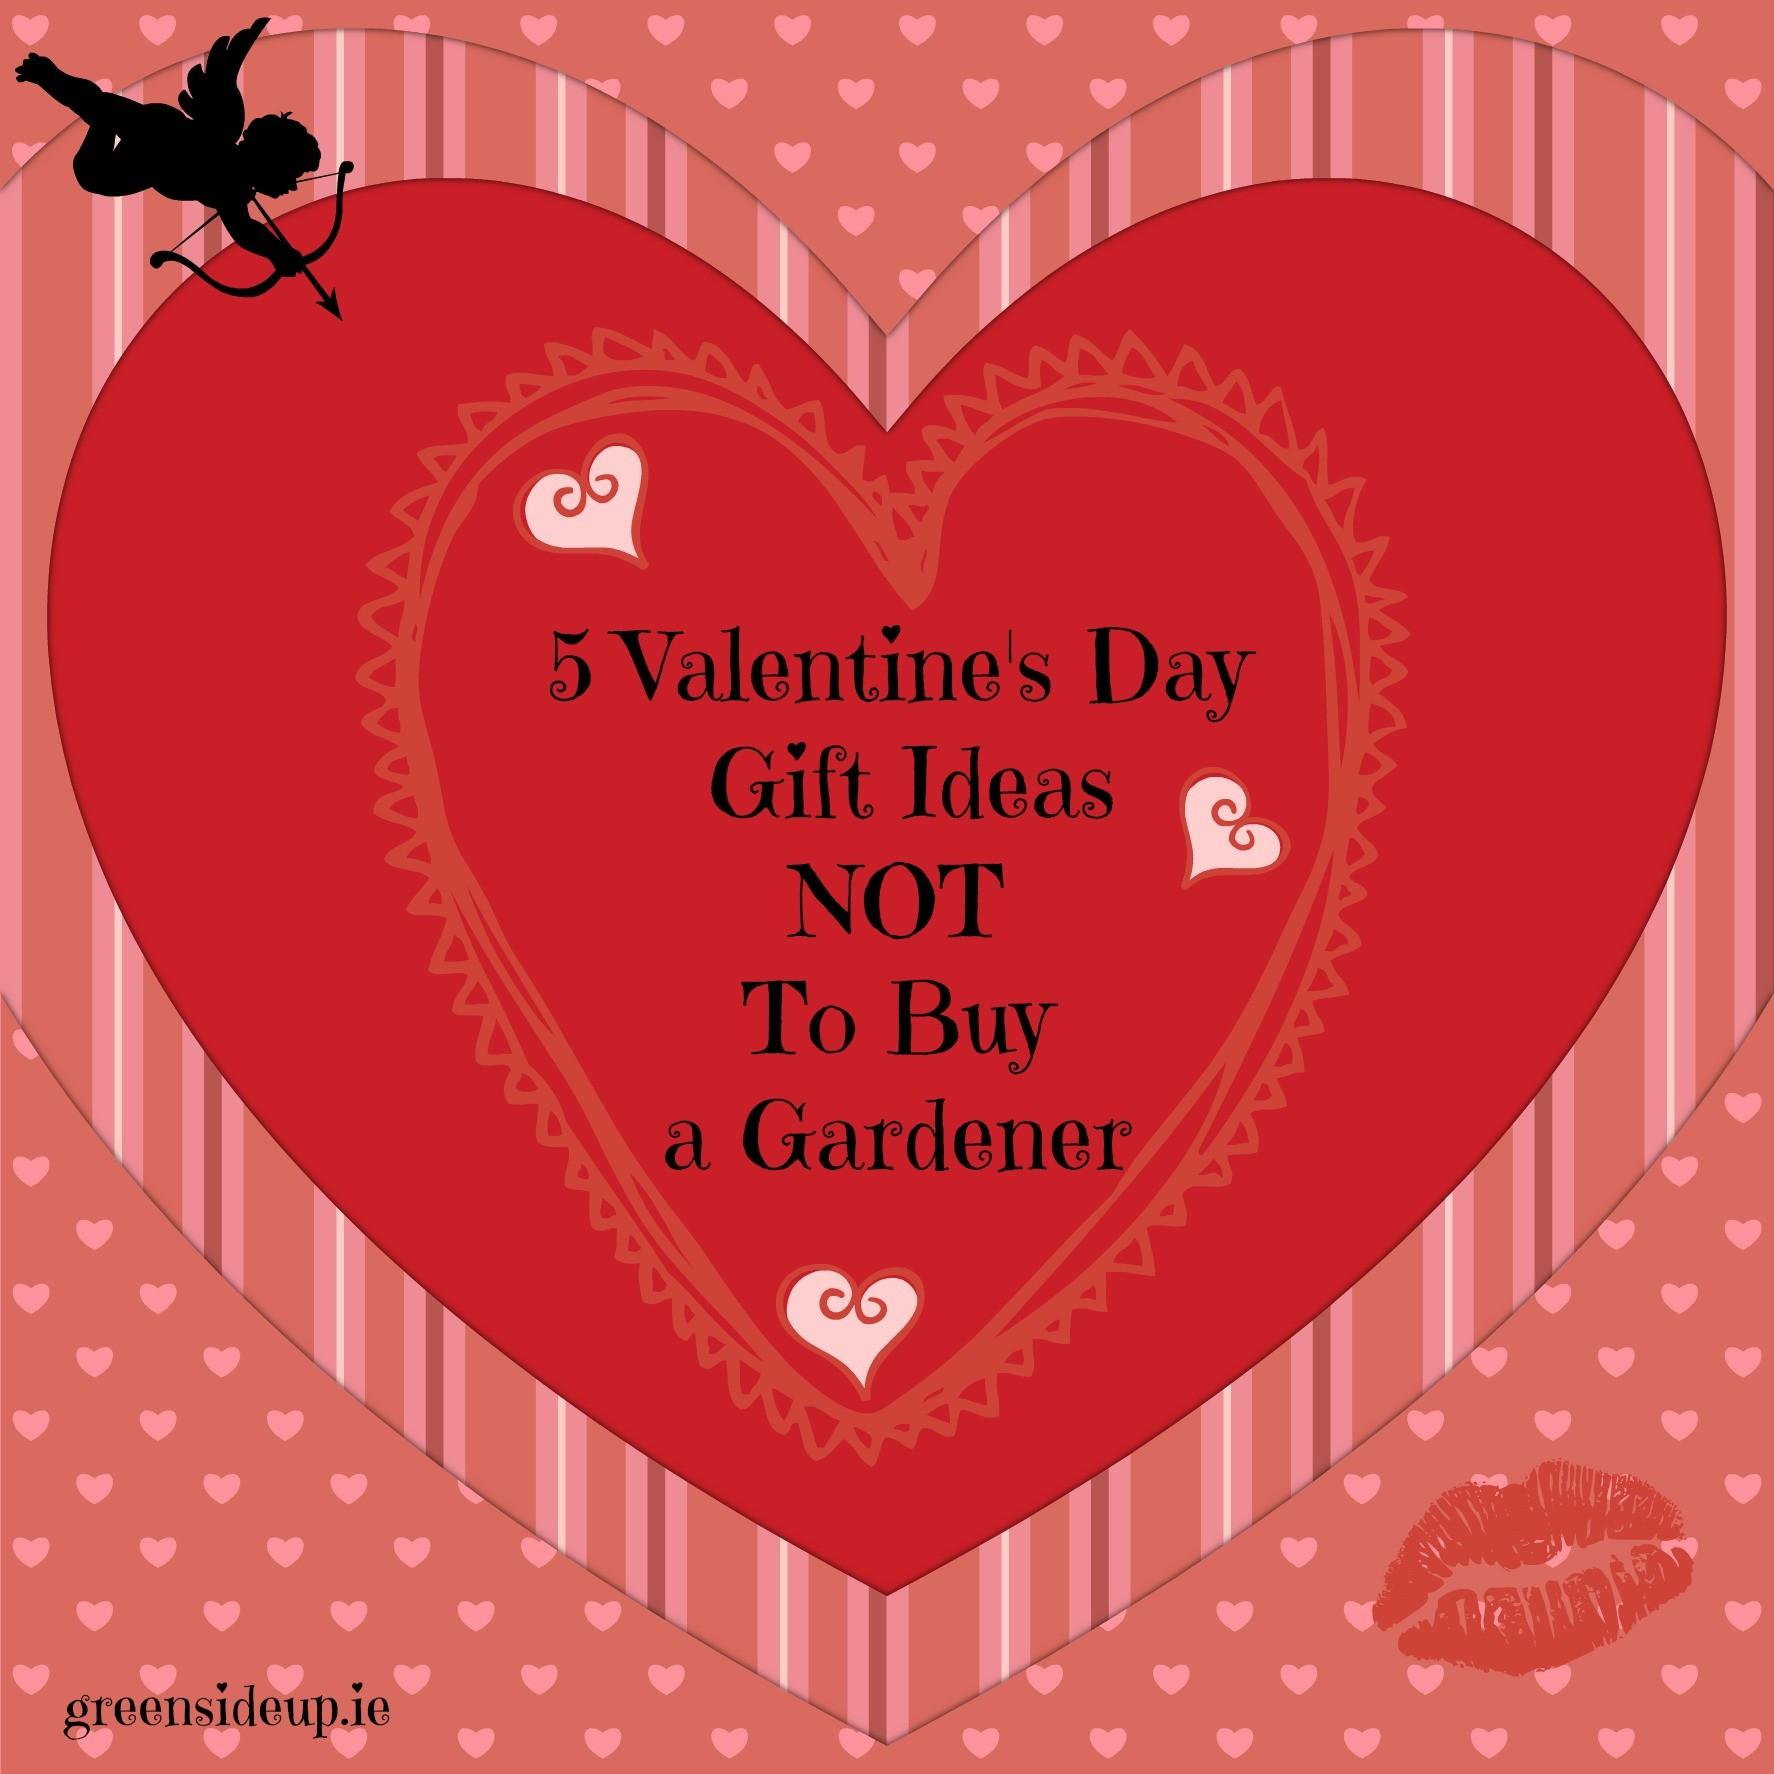 Valentines Day Gift Ideas Gardenergreenside